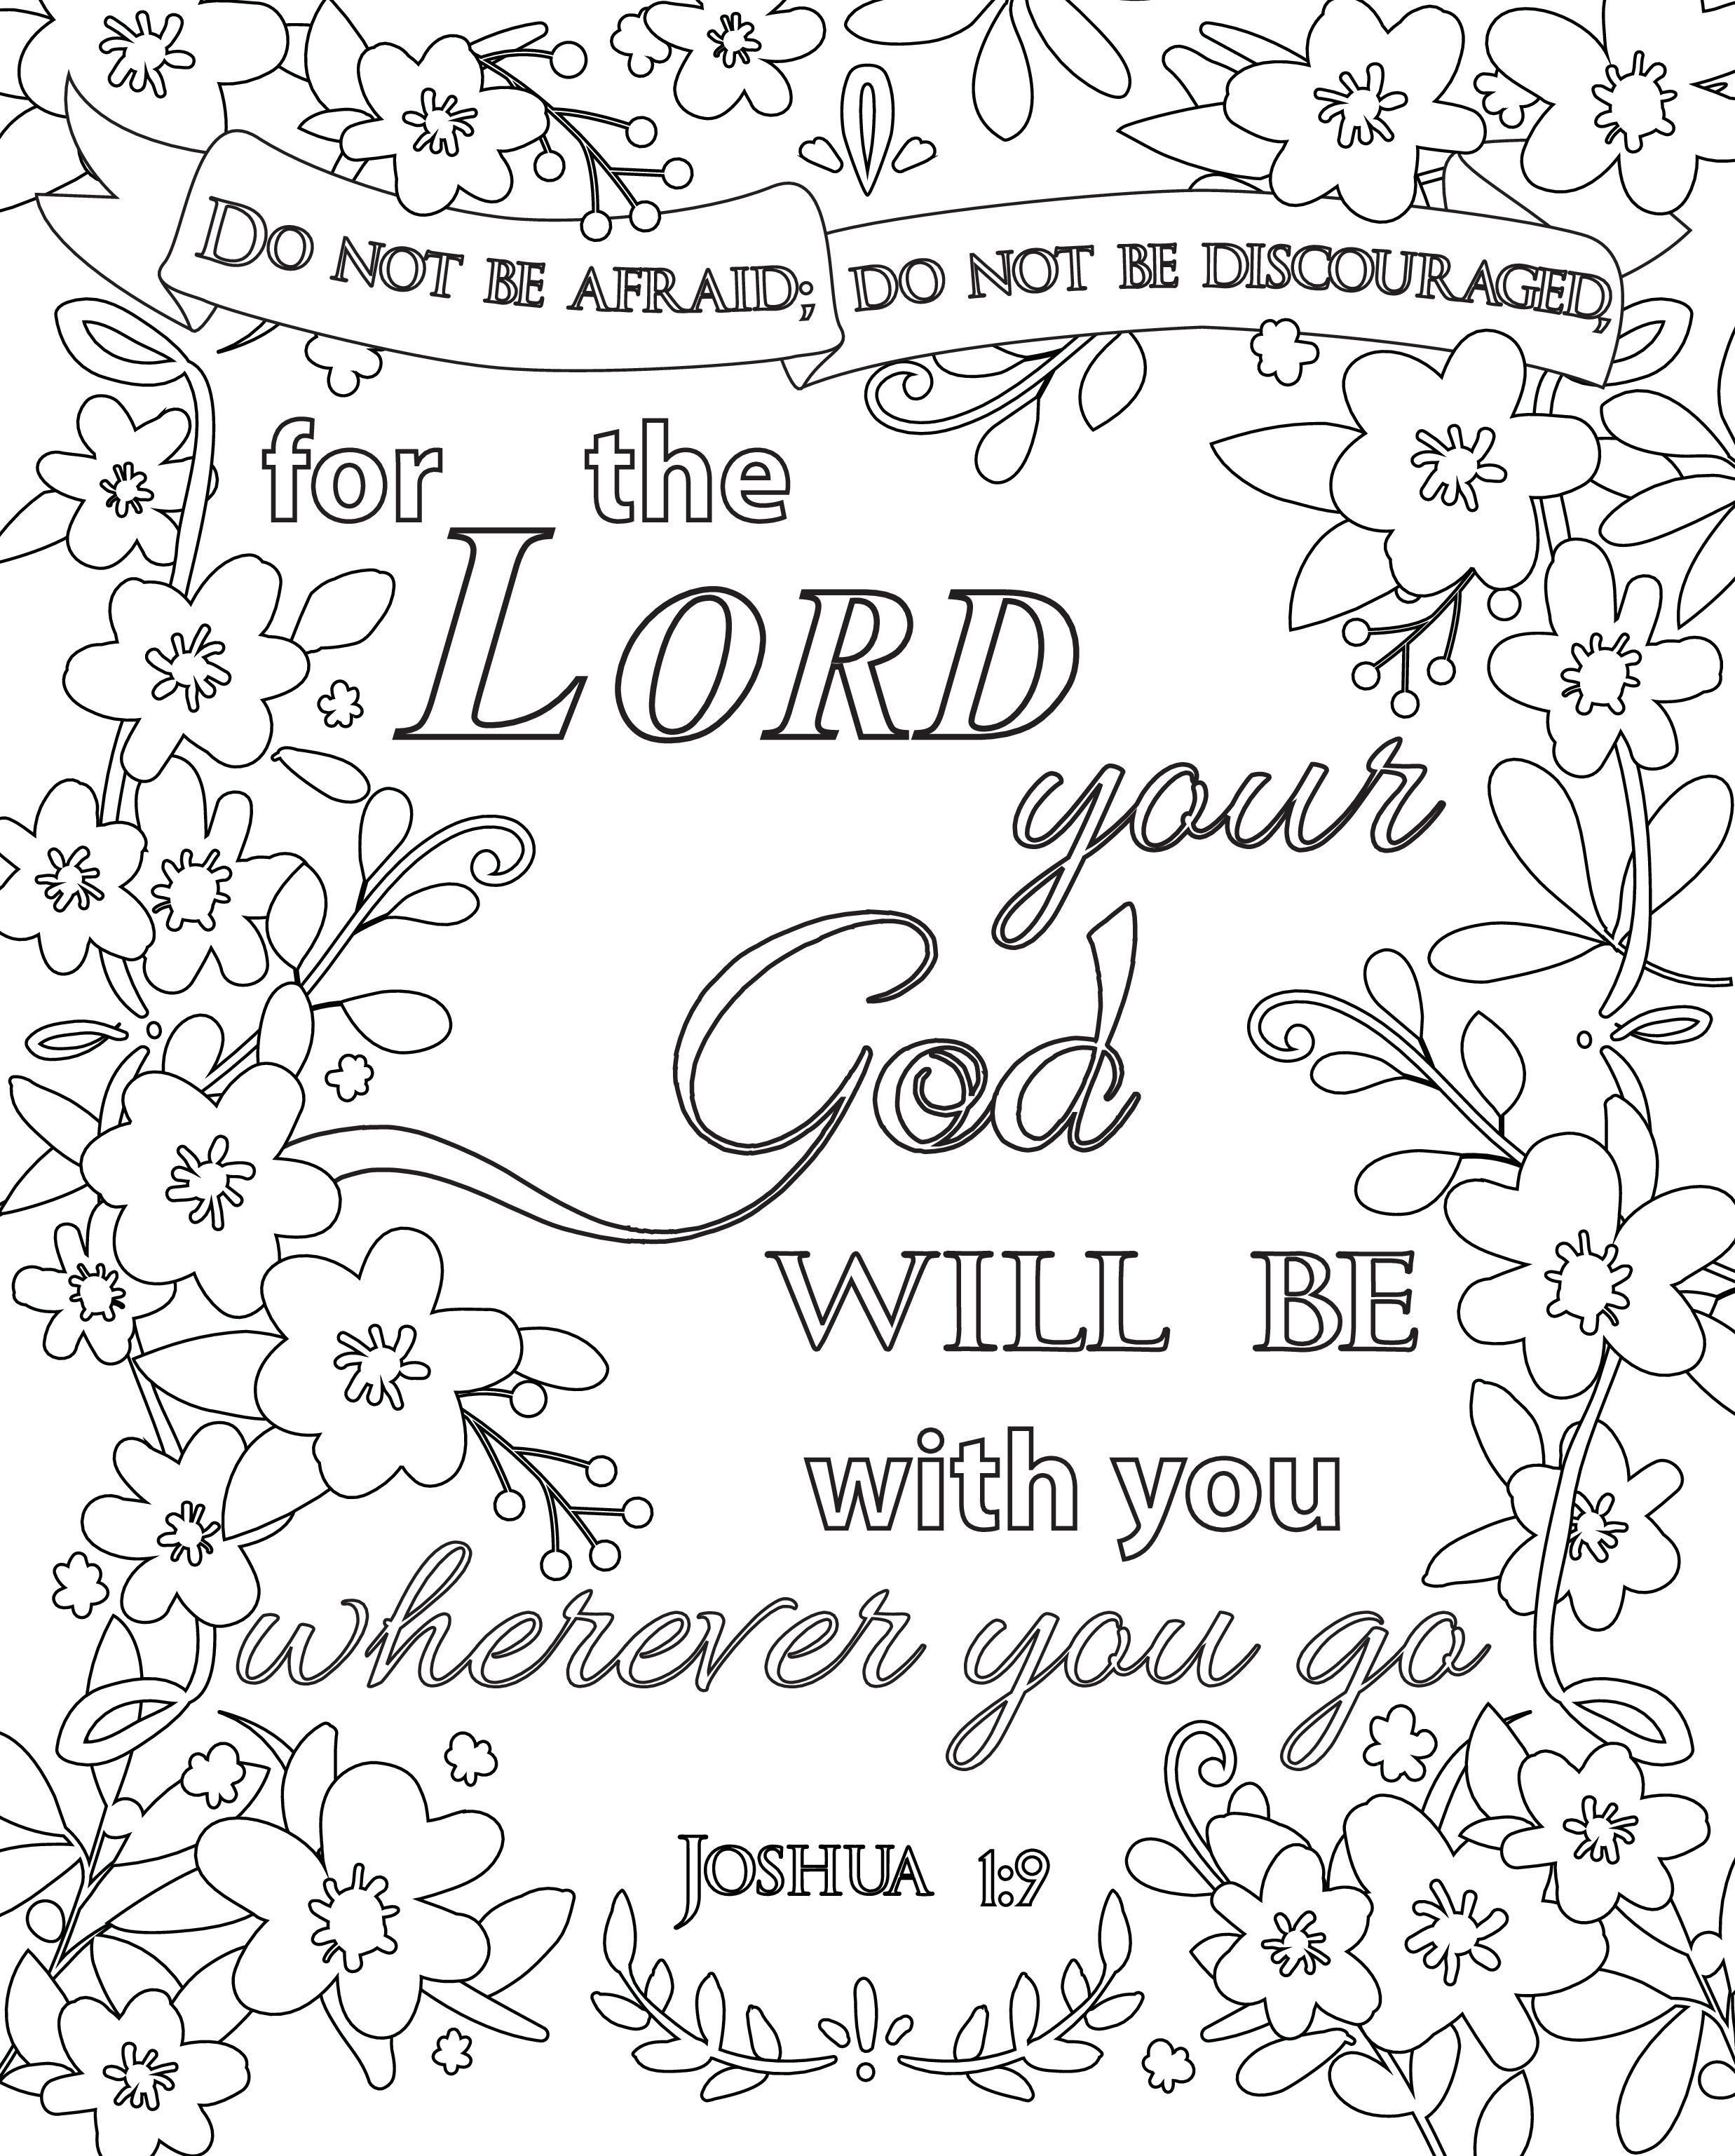 Free Christian Coloring Pages For Adults Roundup Joditt Designs Bible Coloring Pages Bible Verse Coloring Page Christian Coloring Book